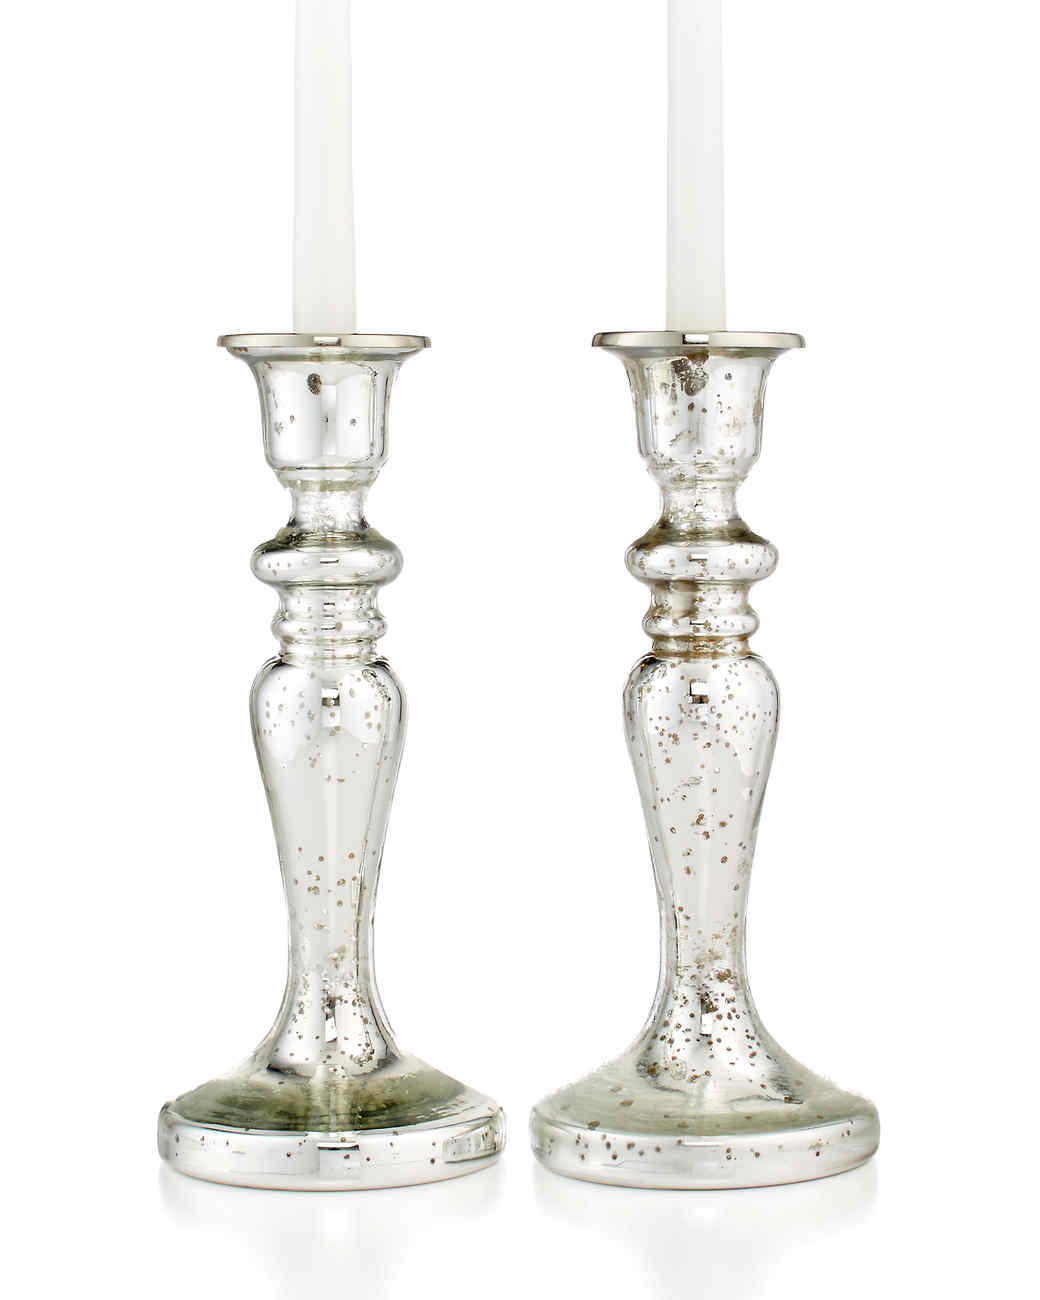 msmacys-candle-holders-mercury-glass-tapers-large-mrkt-1013.jpg